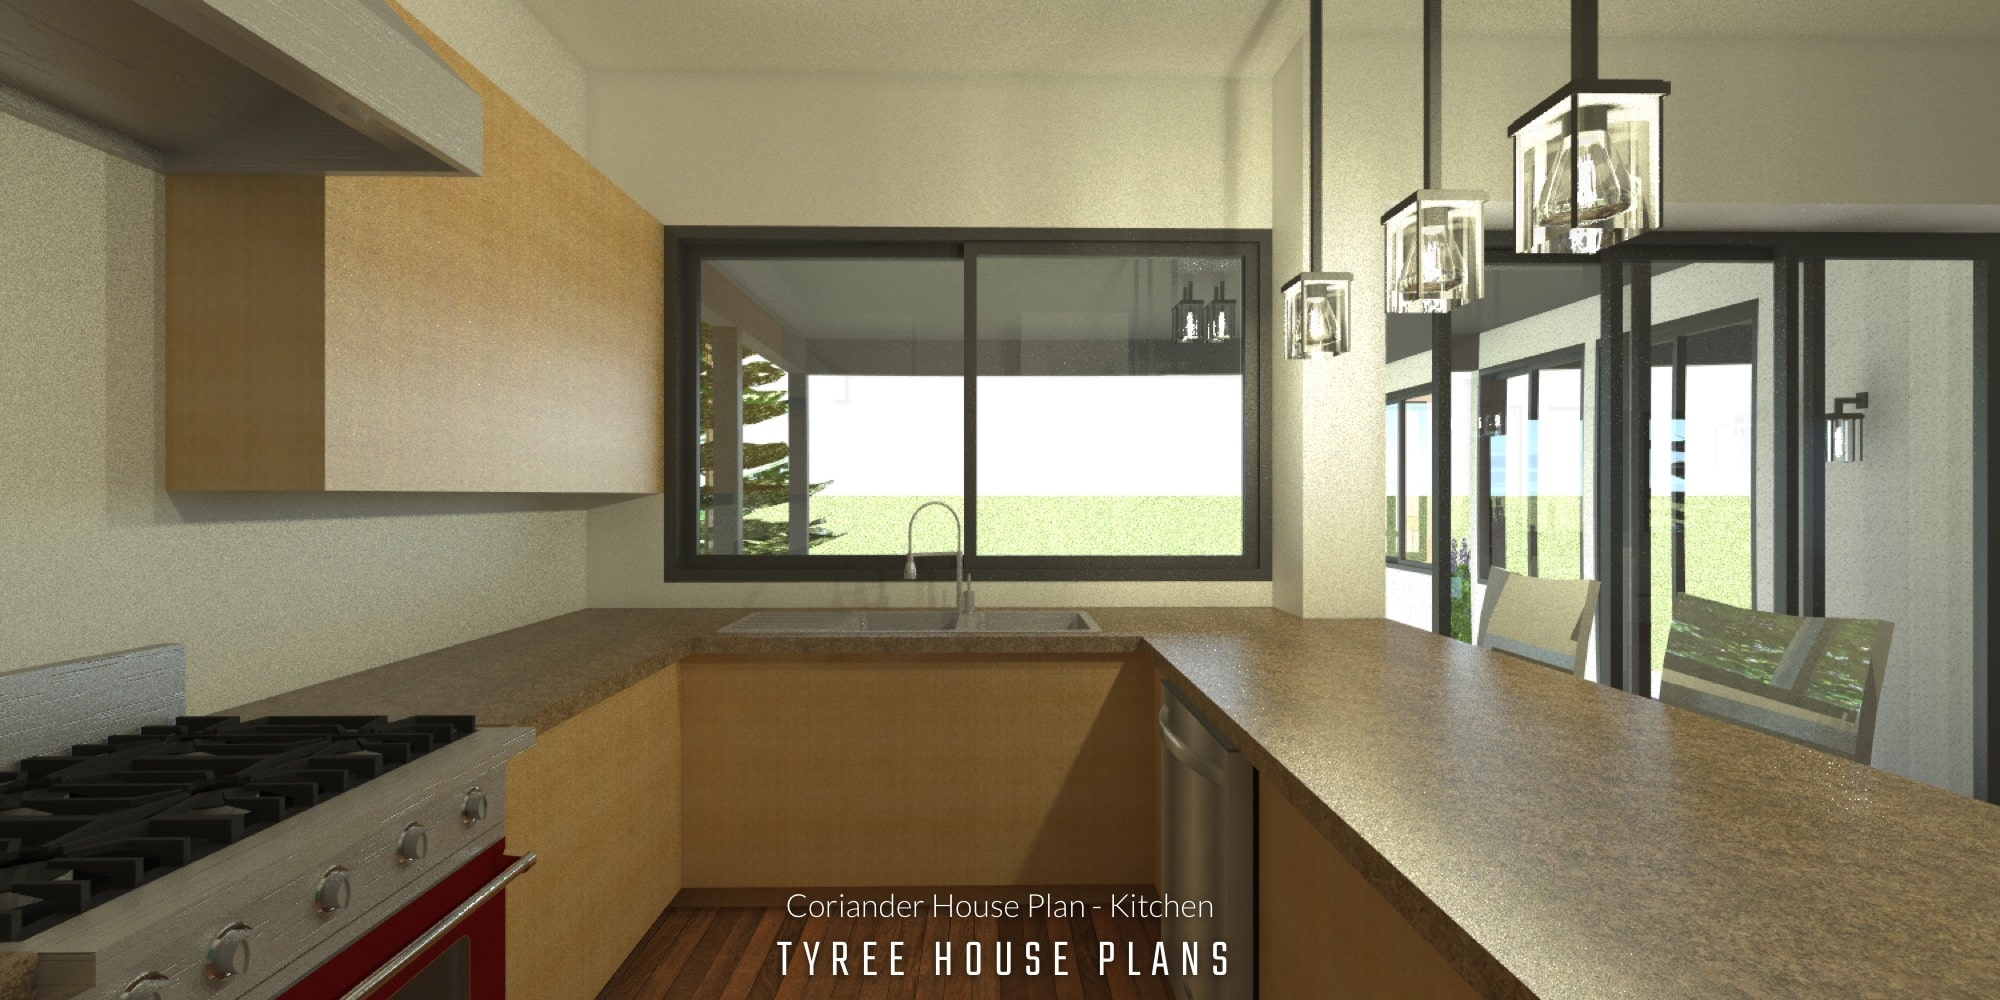 Kitchen - Coriander House Plan by Tyree House Plans